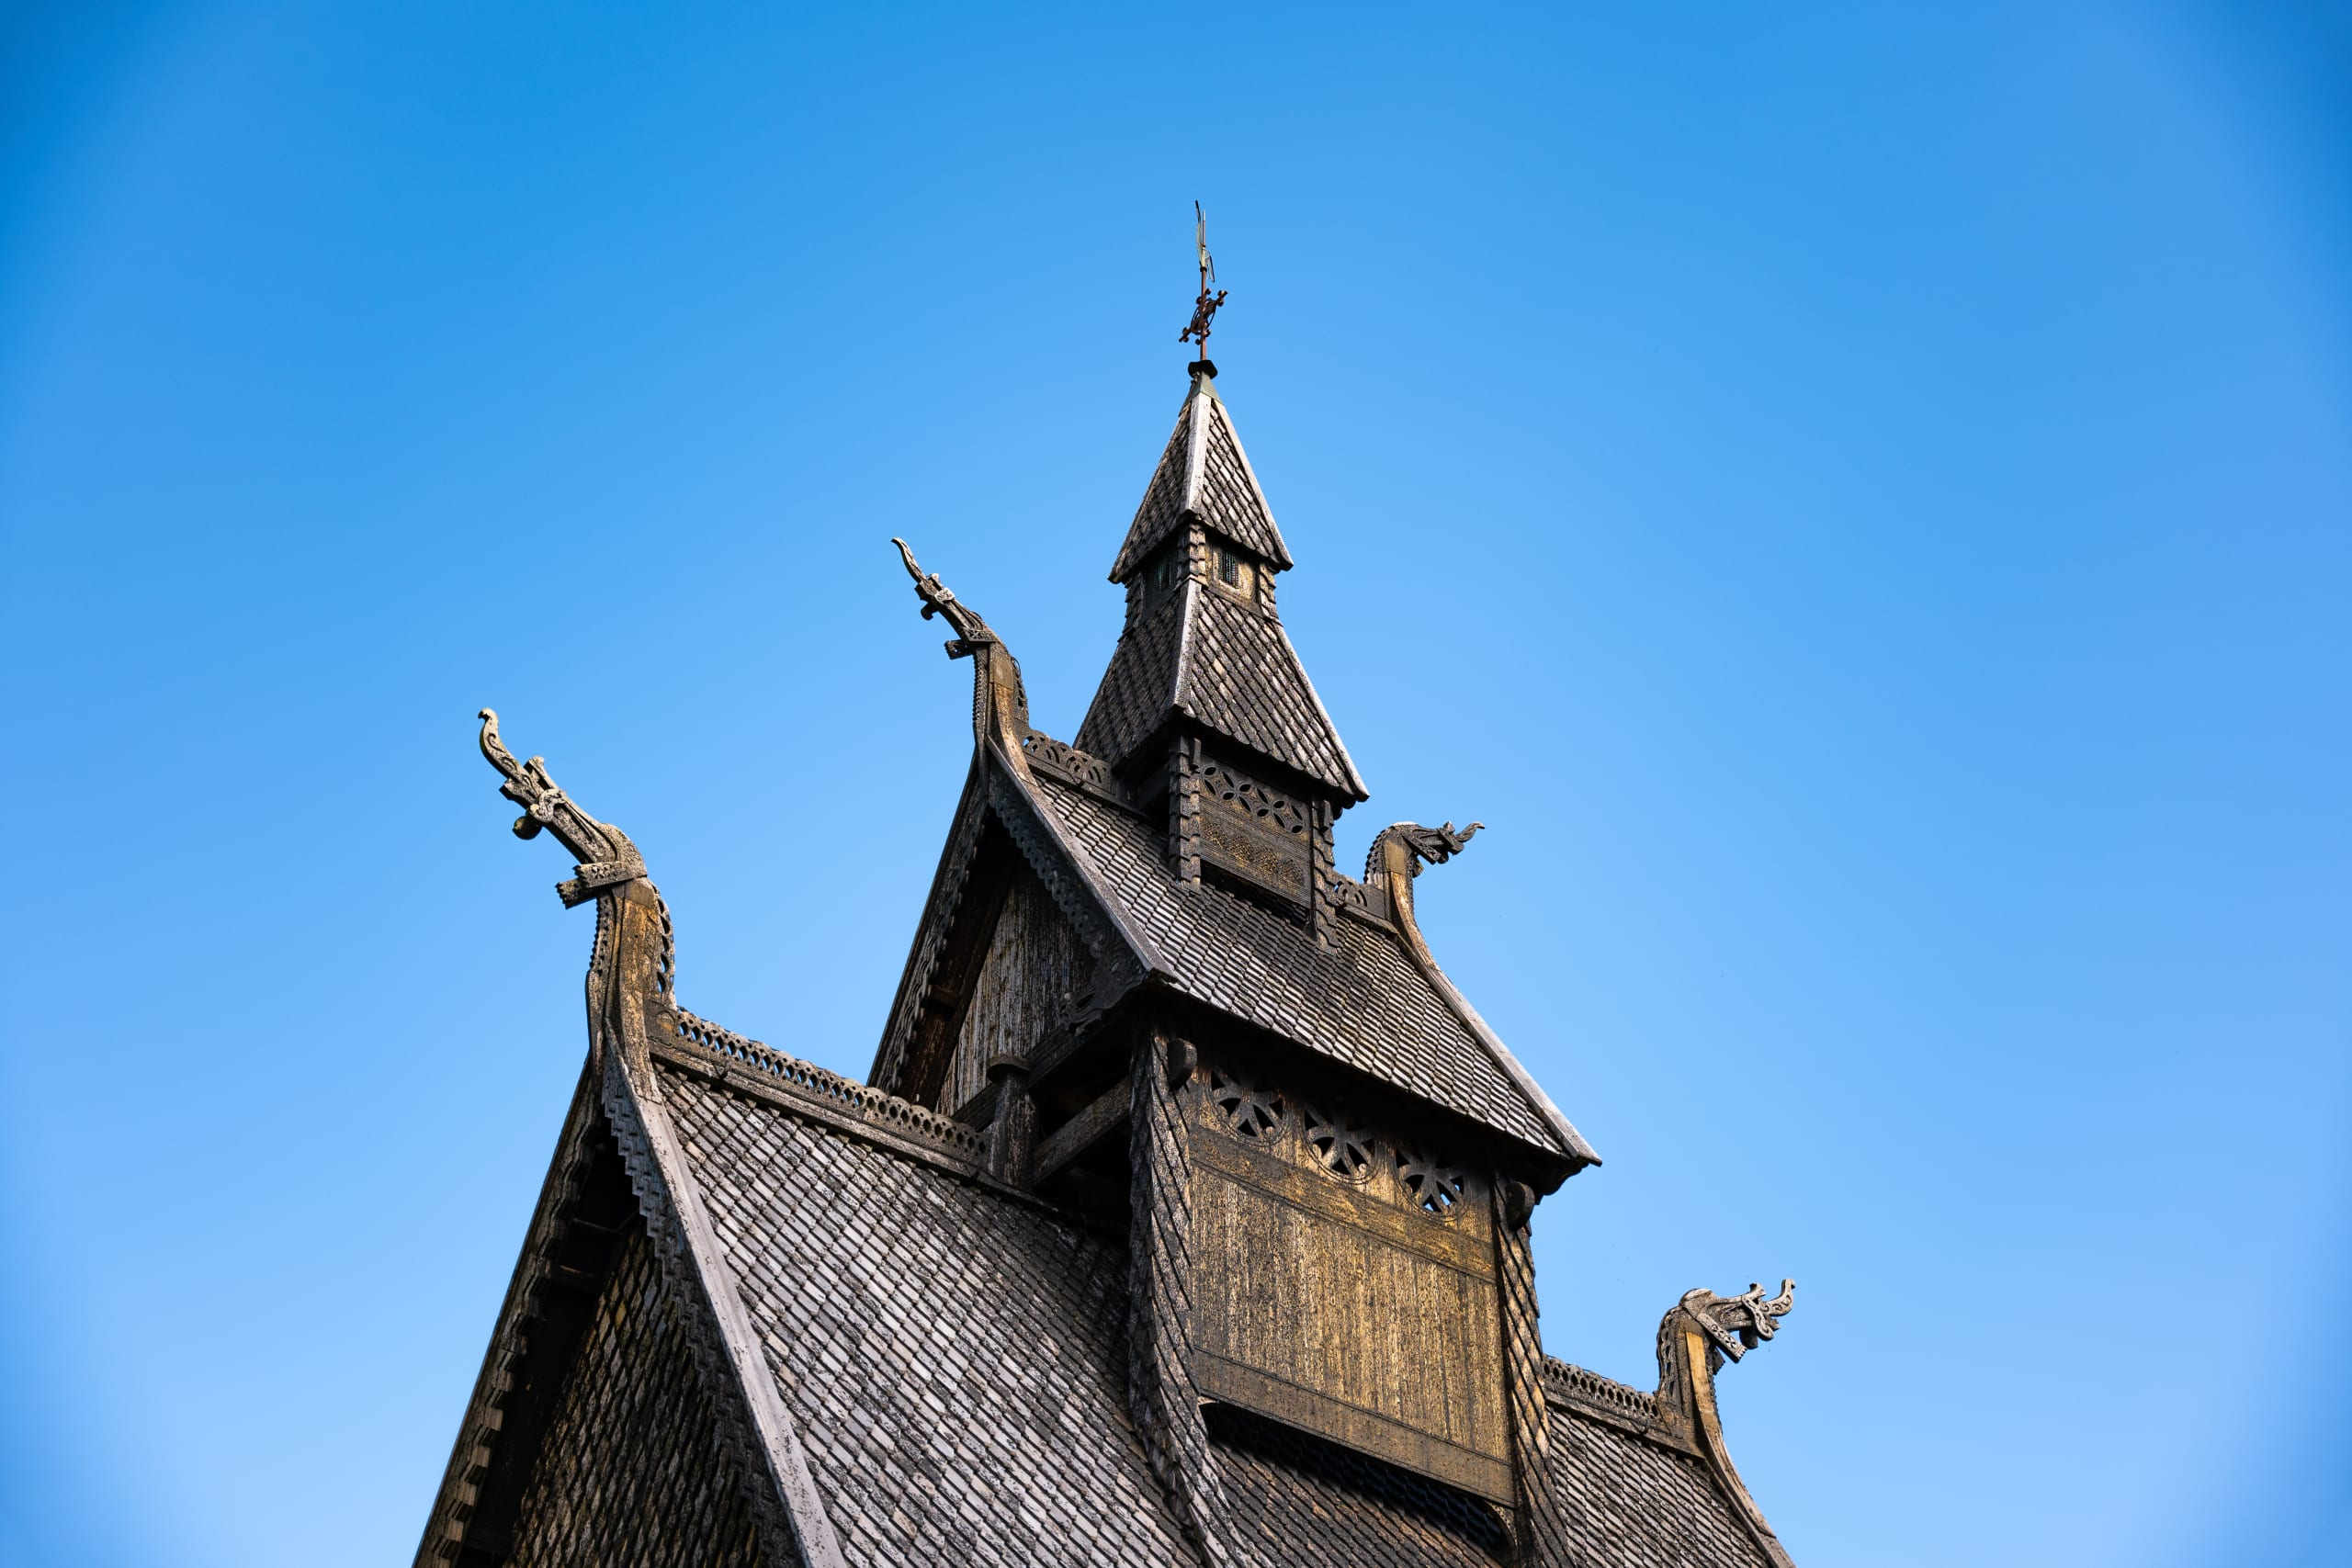 Details of Viking art on Hopperstad Stave church